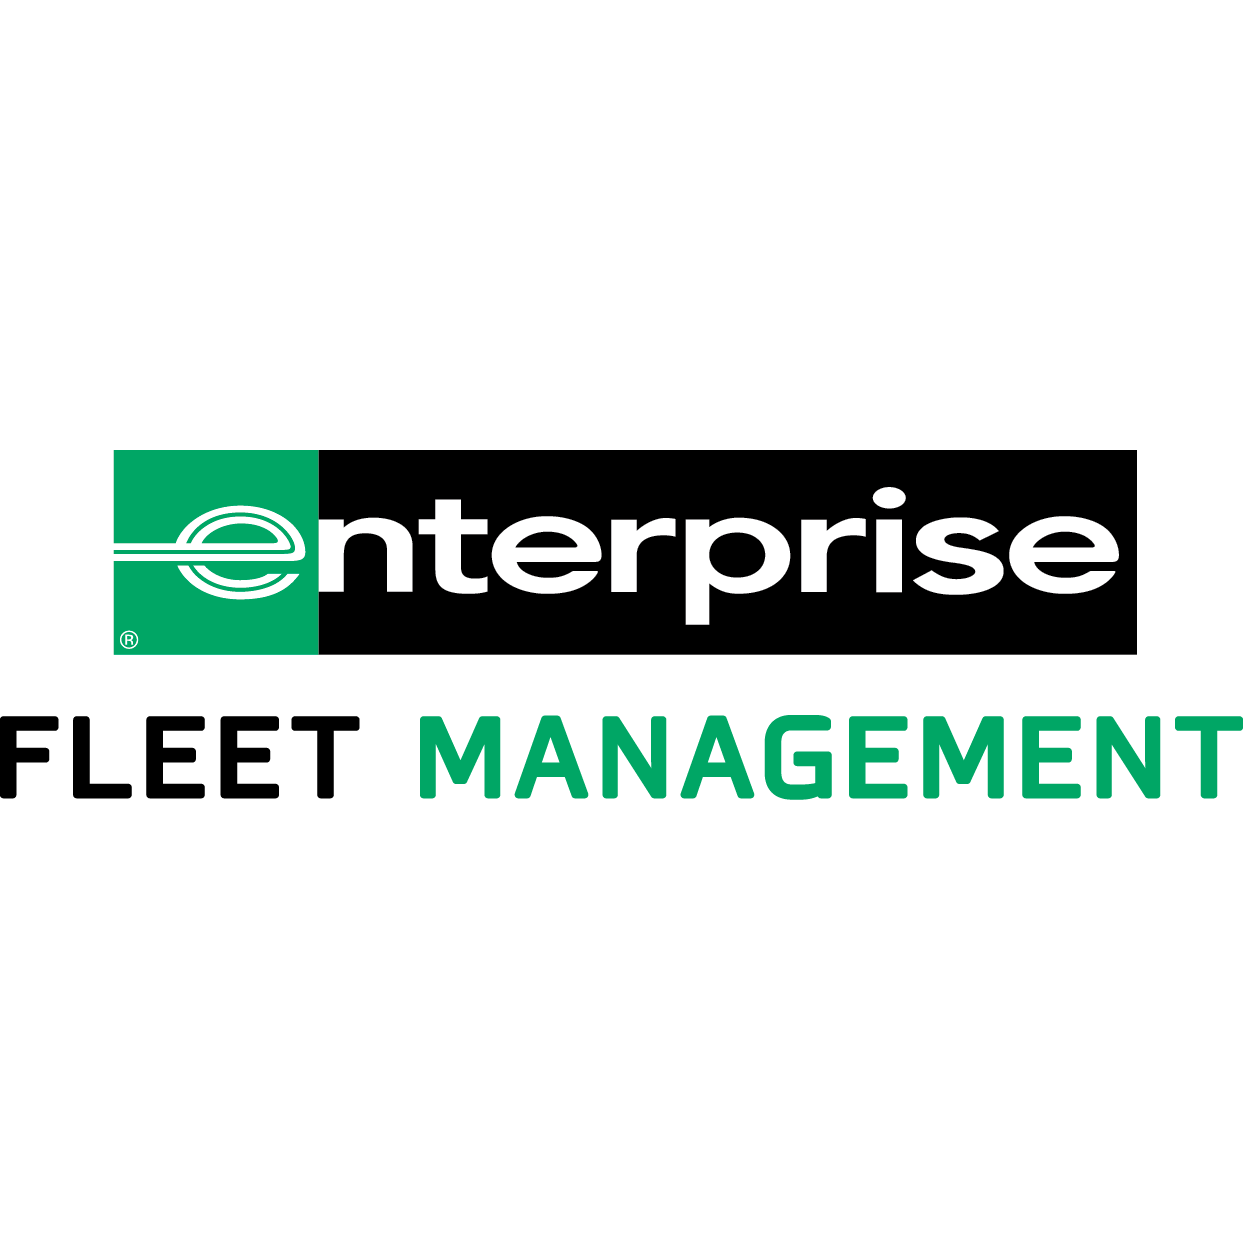 Enterprise Fleet Management image 3